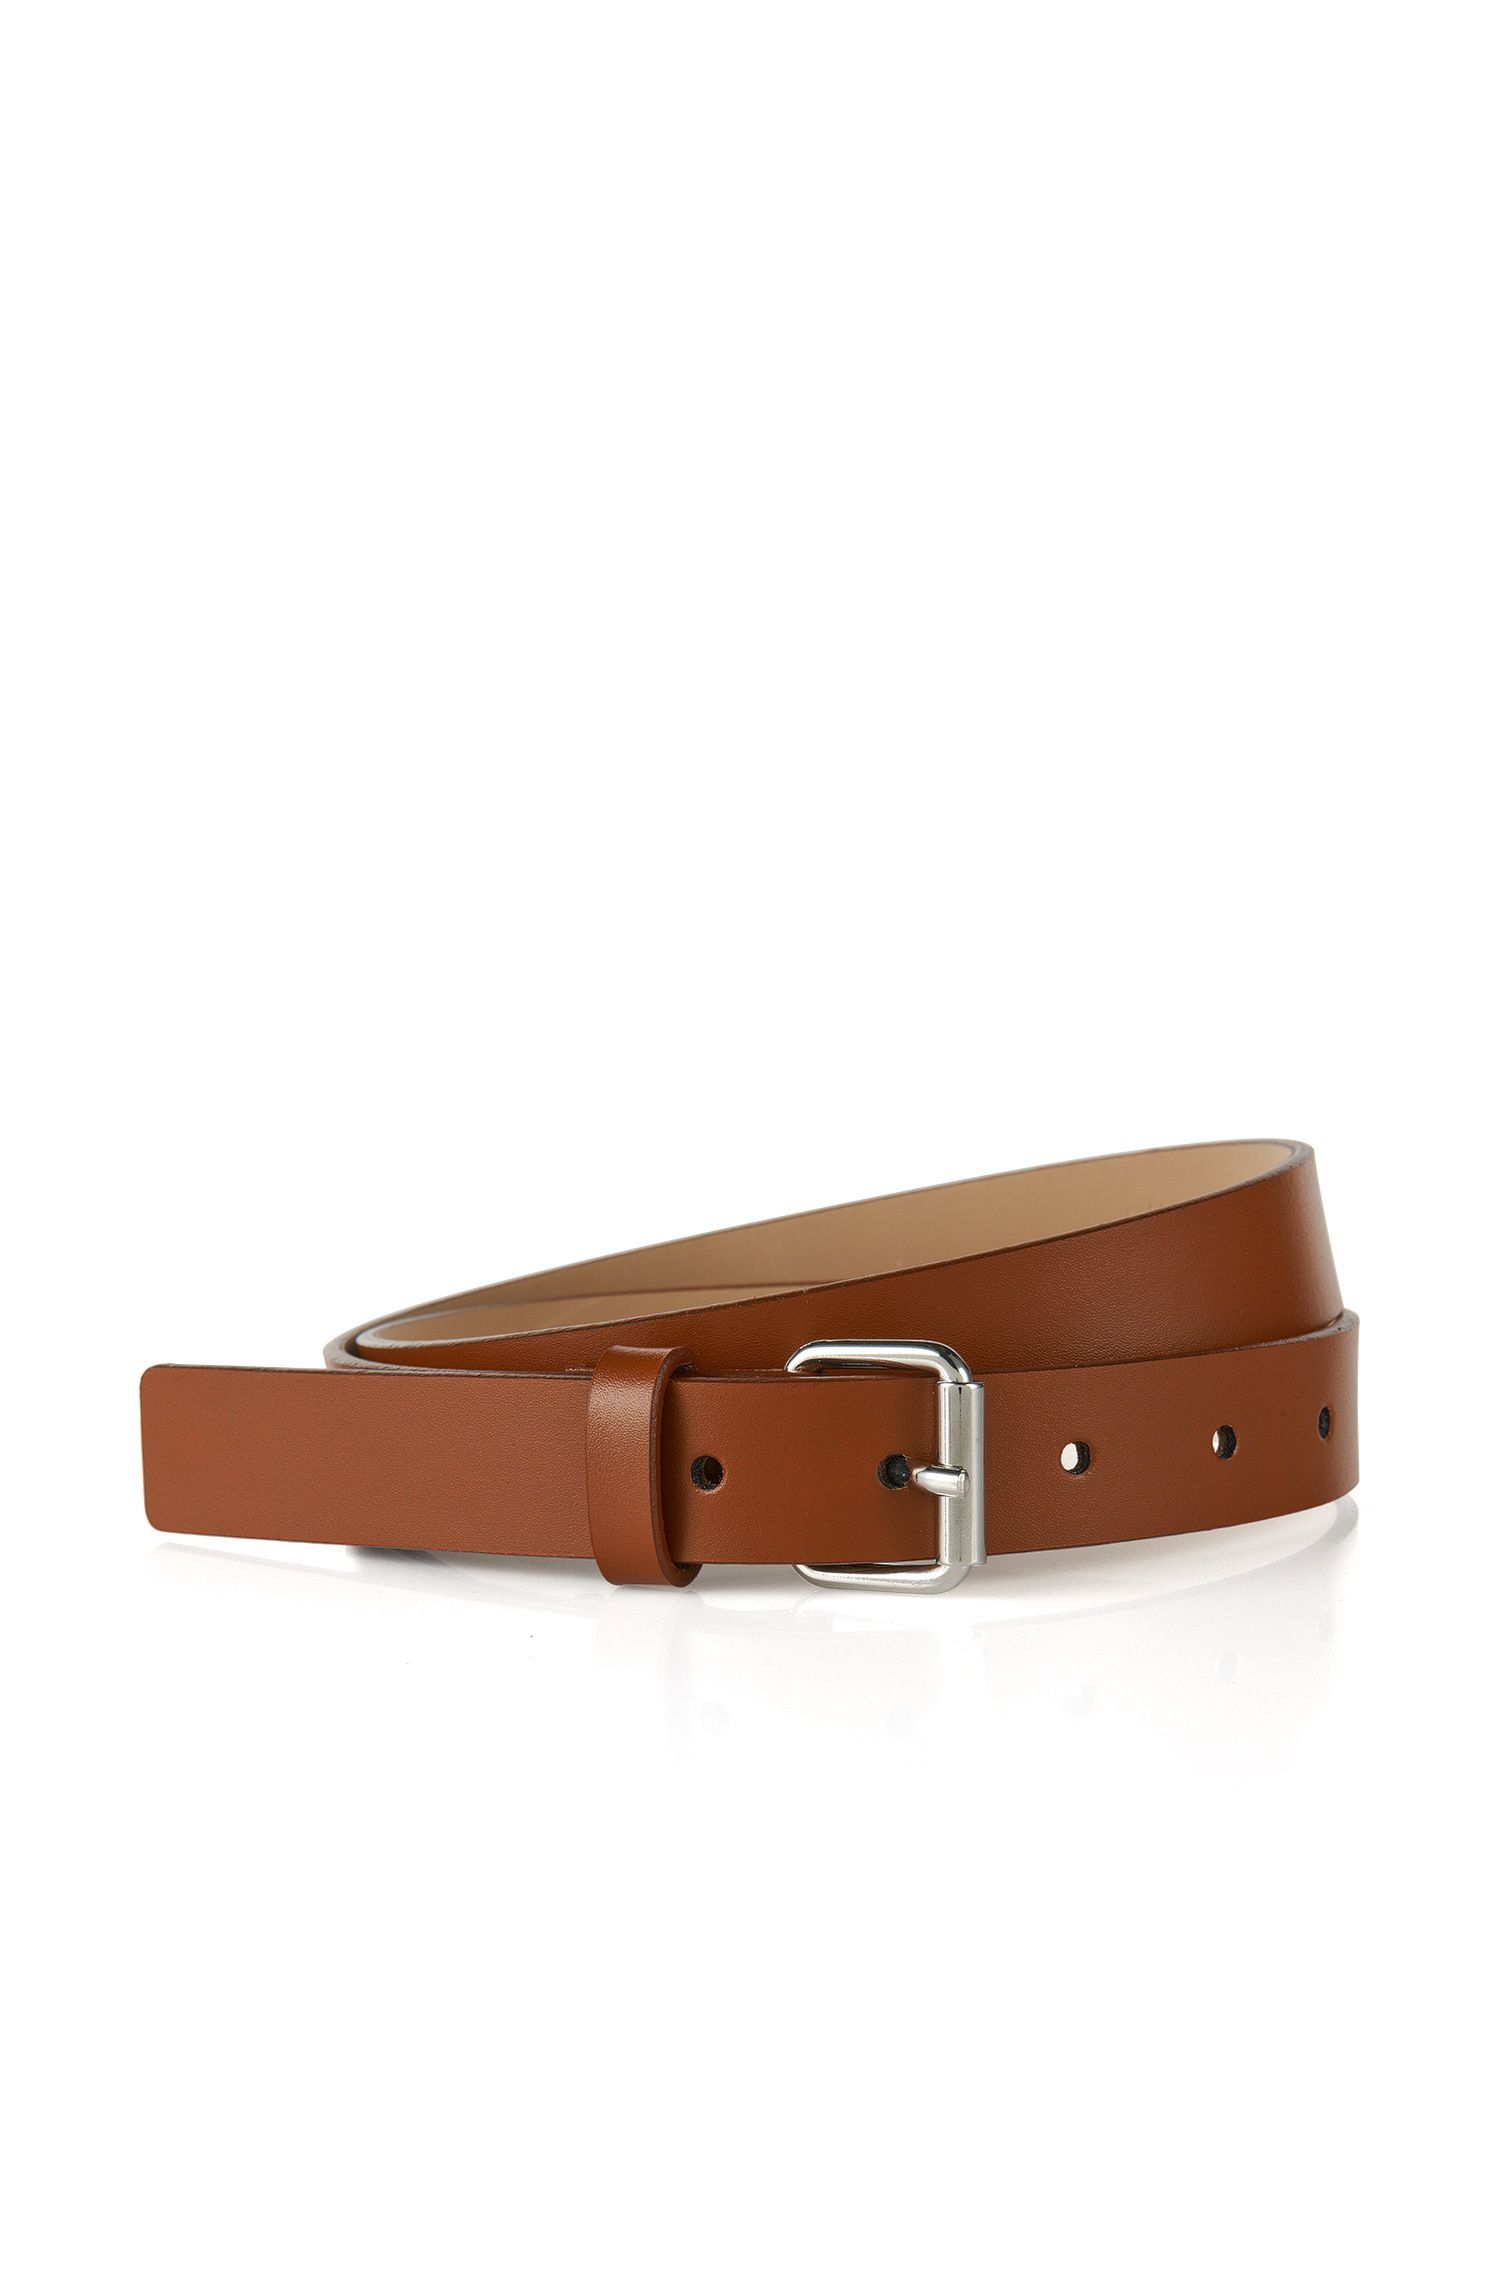 Italian-made belt in smooth leather